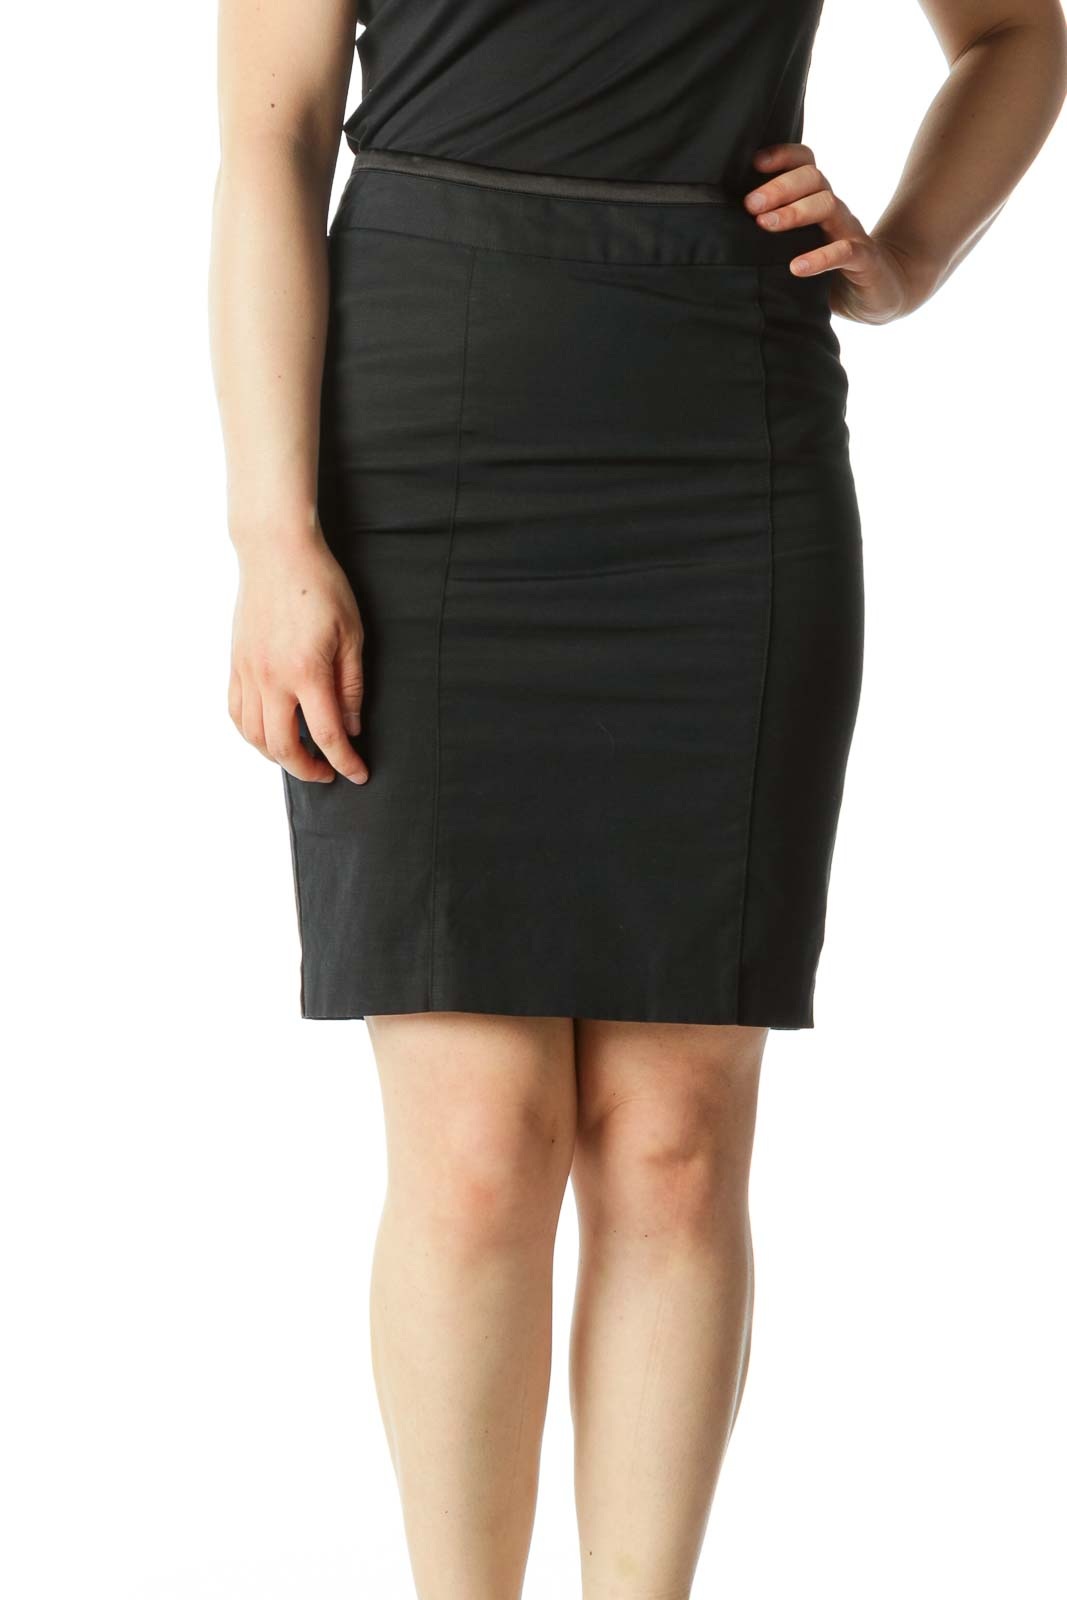 2ebed9a3c Shop Black Textured Pencil Skirt clothing and handbags at SilkRoll ...